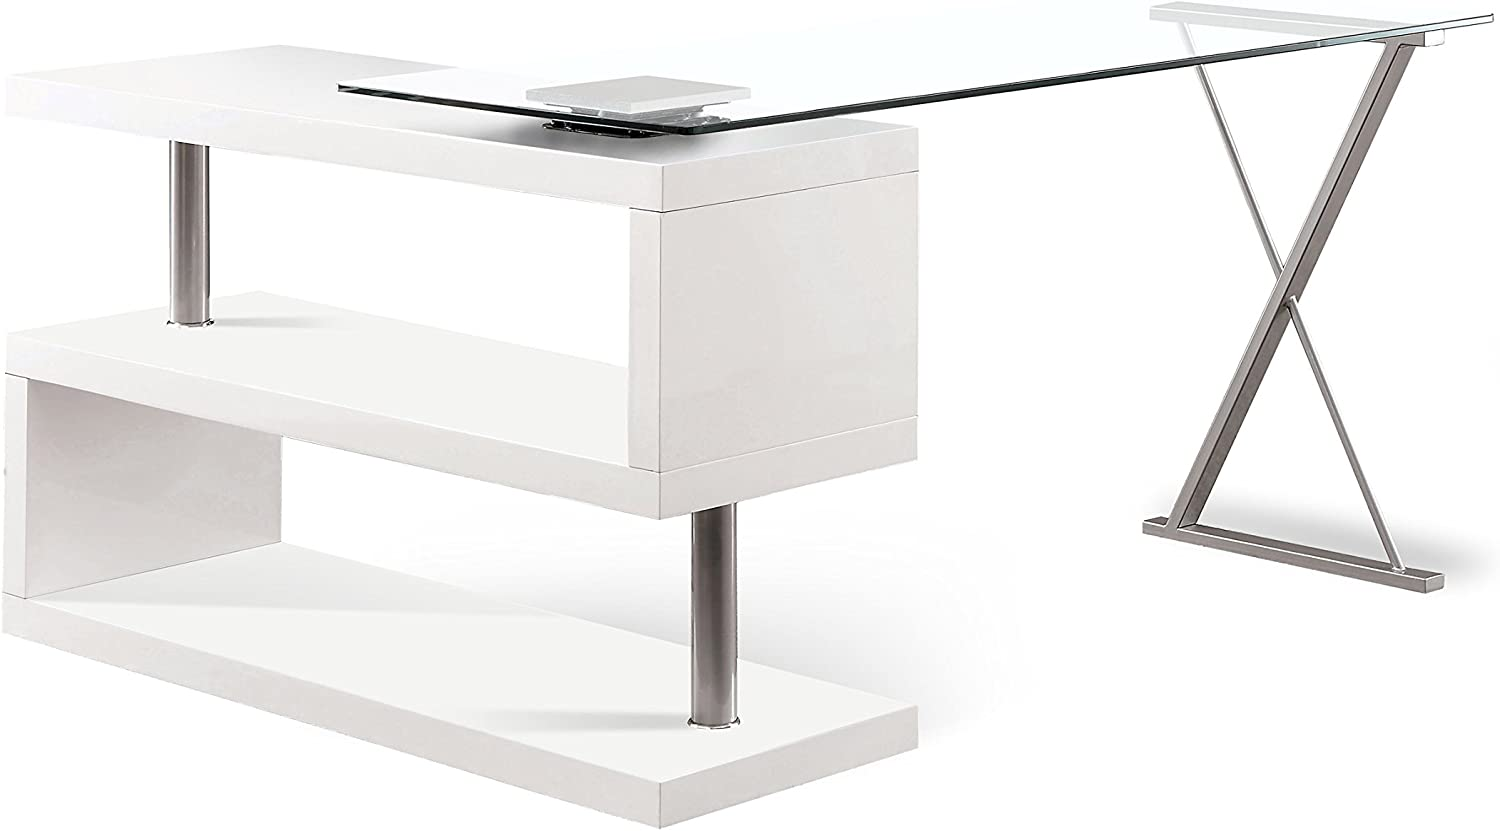 Furniture of America Homes: Inside + Out ioHOMES Lilliana White S-Shaped Glass-Top Office Desk